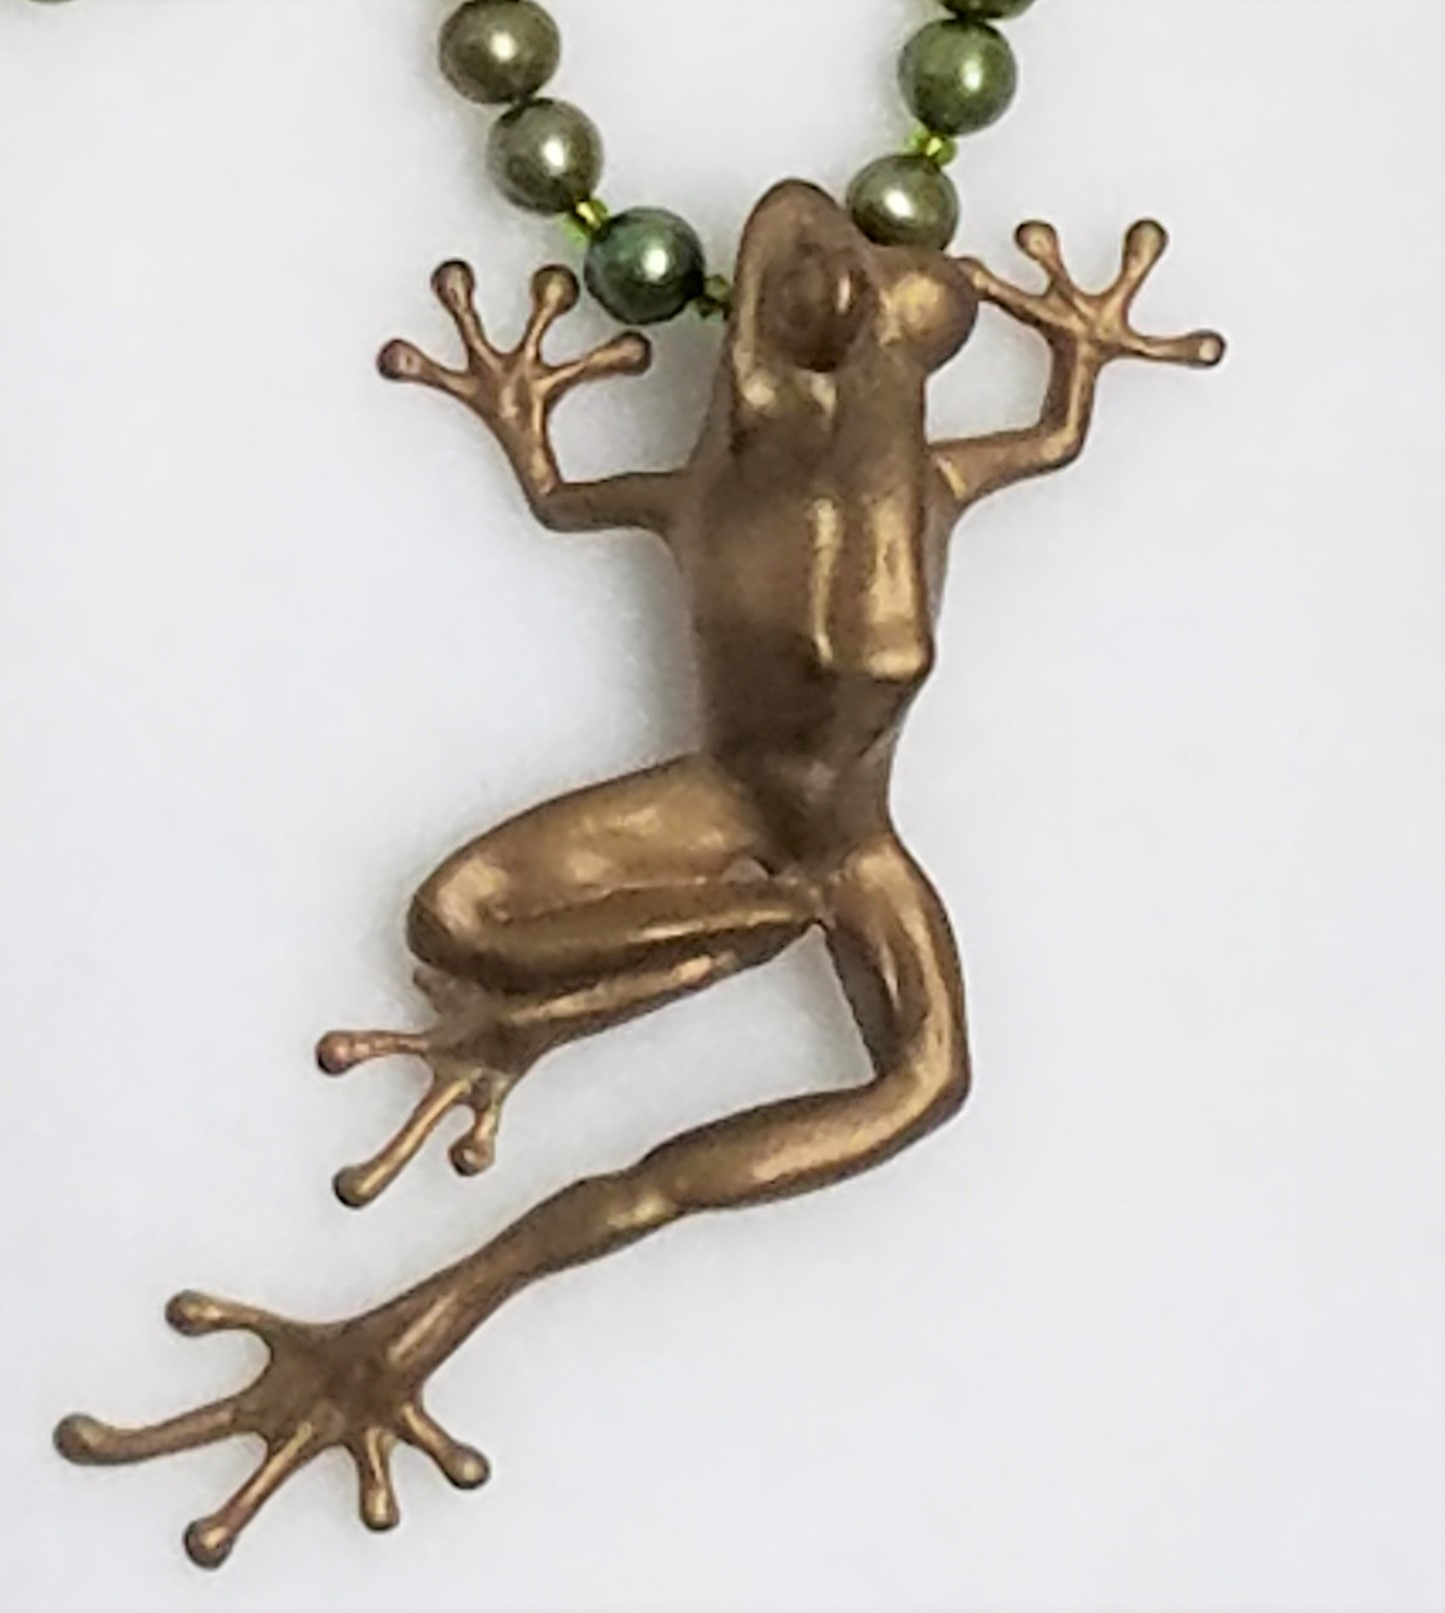 Tree frog Bronze pendant by Eric Thorsen